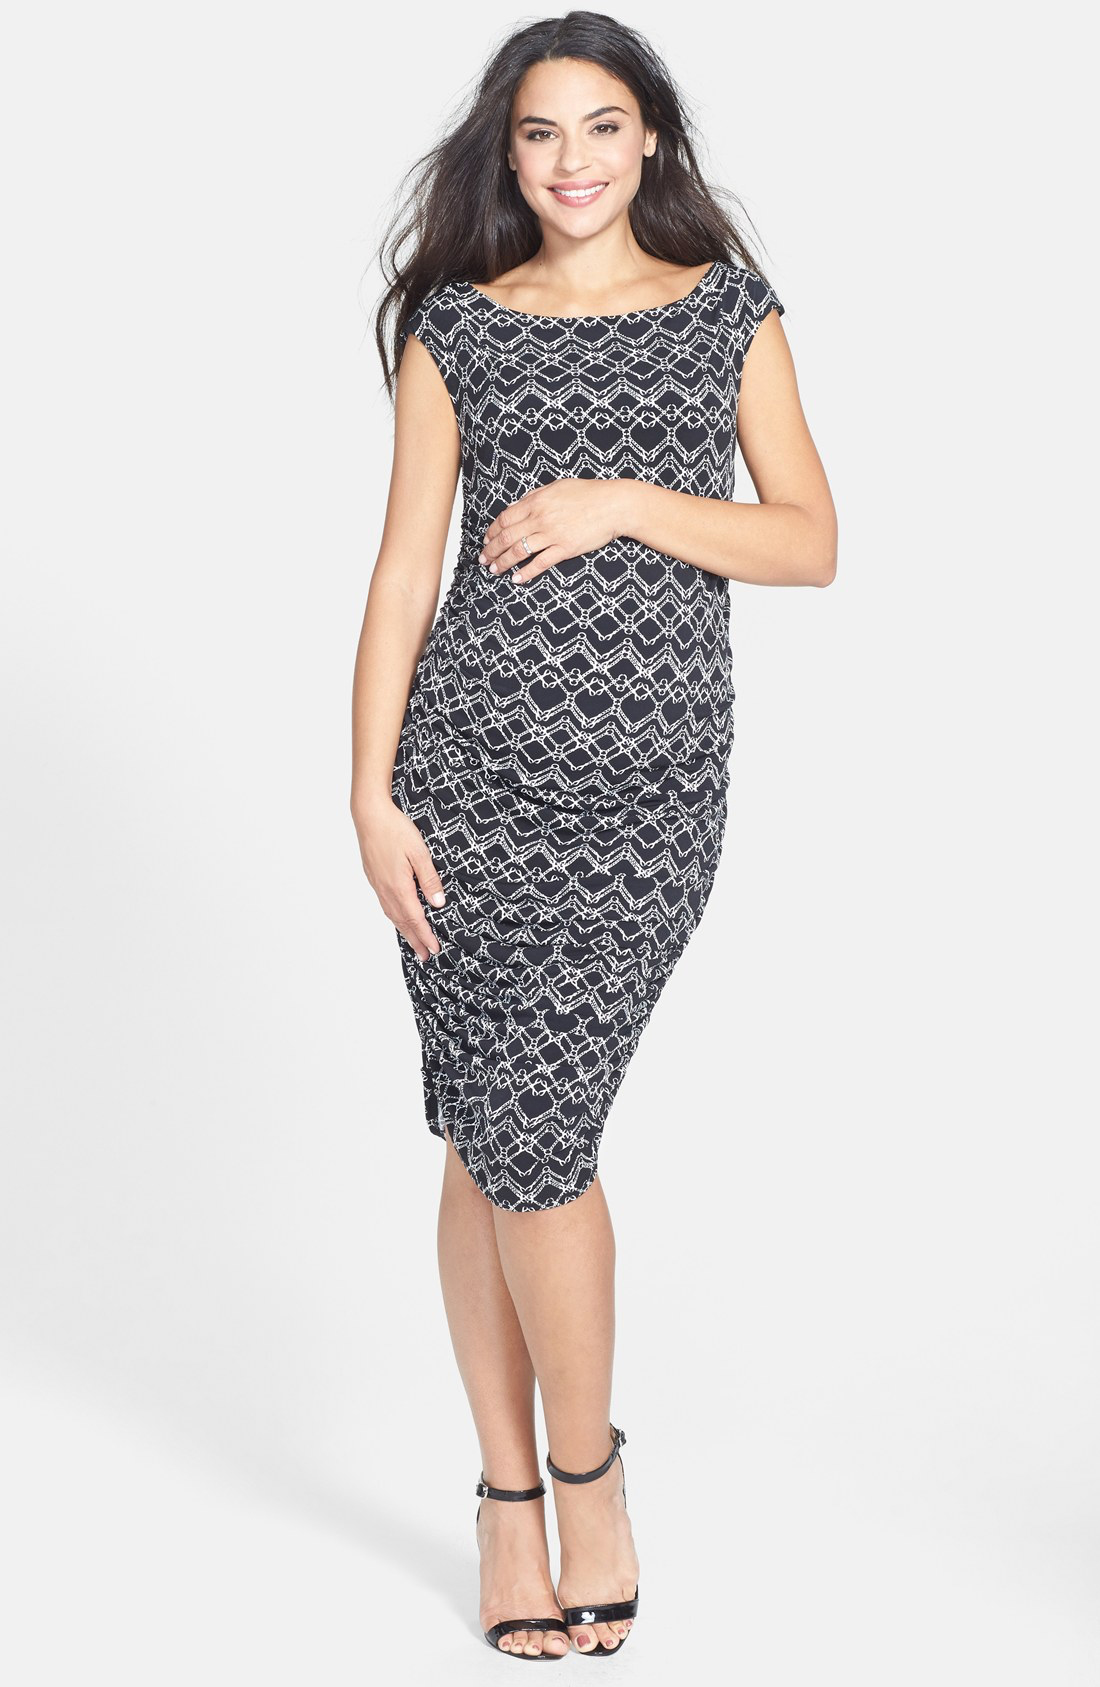 Ruched Maternity Dress from Nordstrom